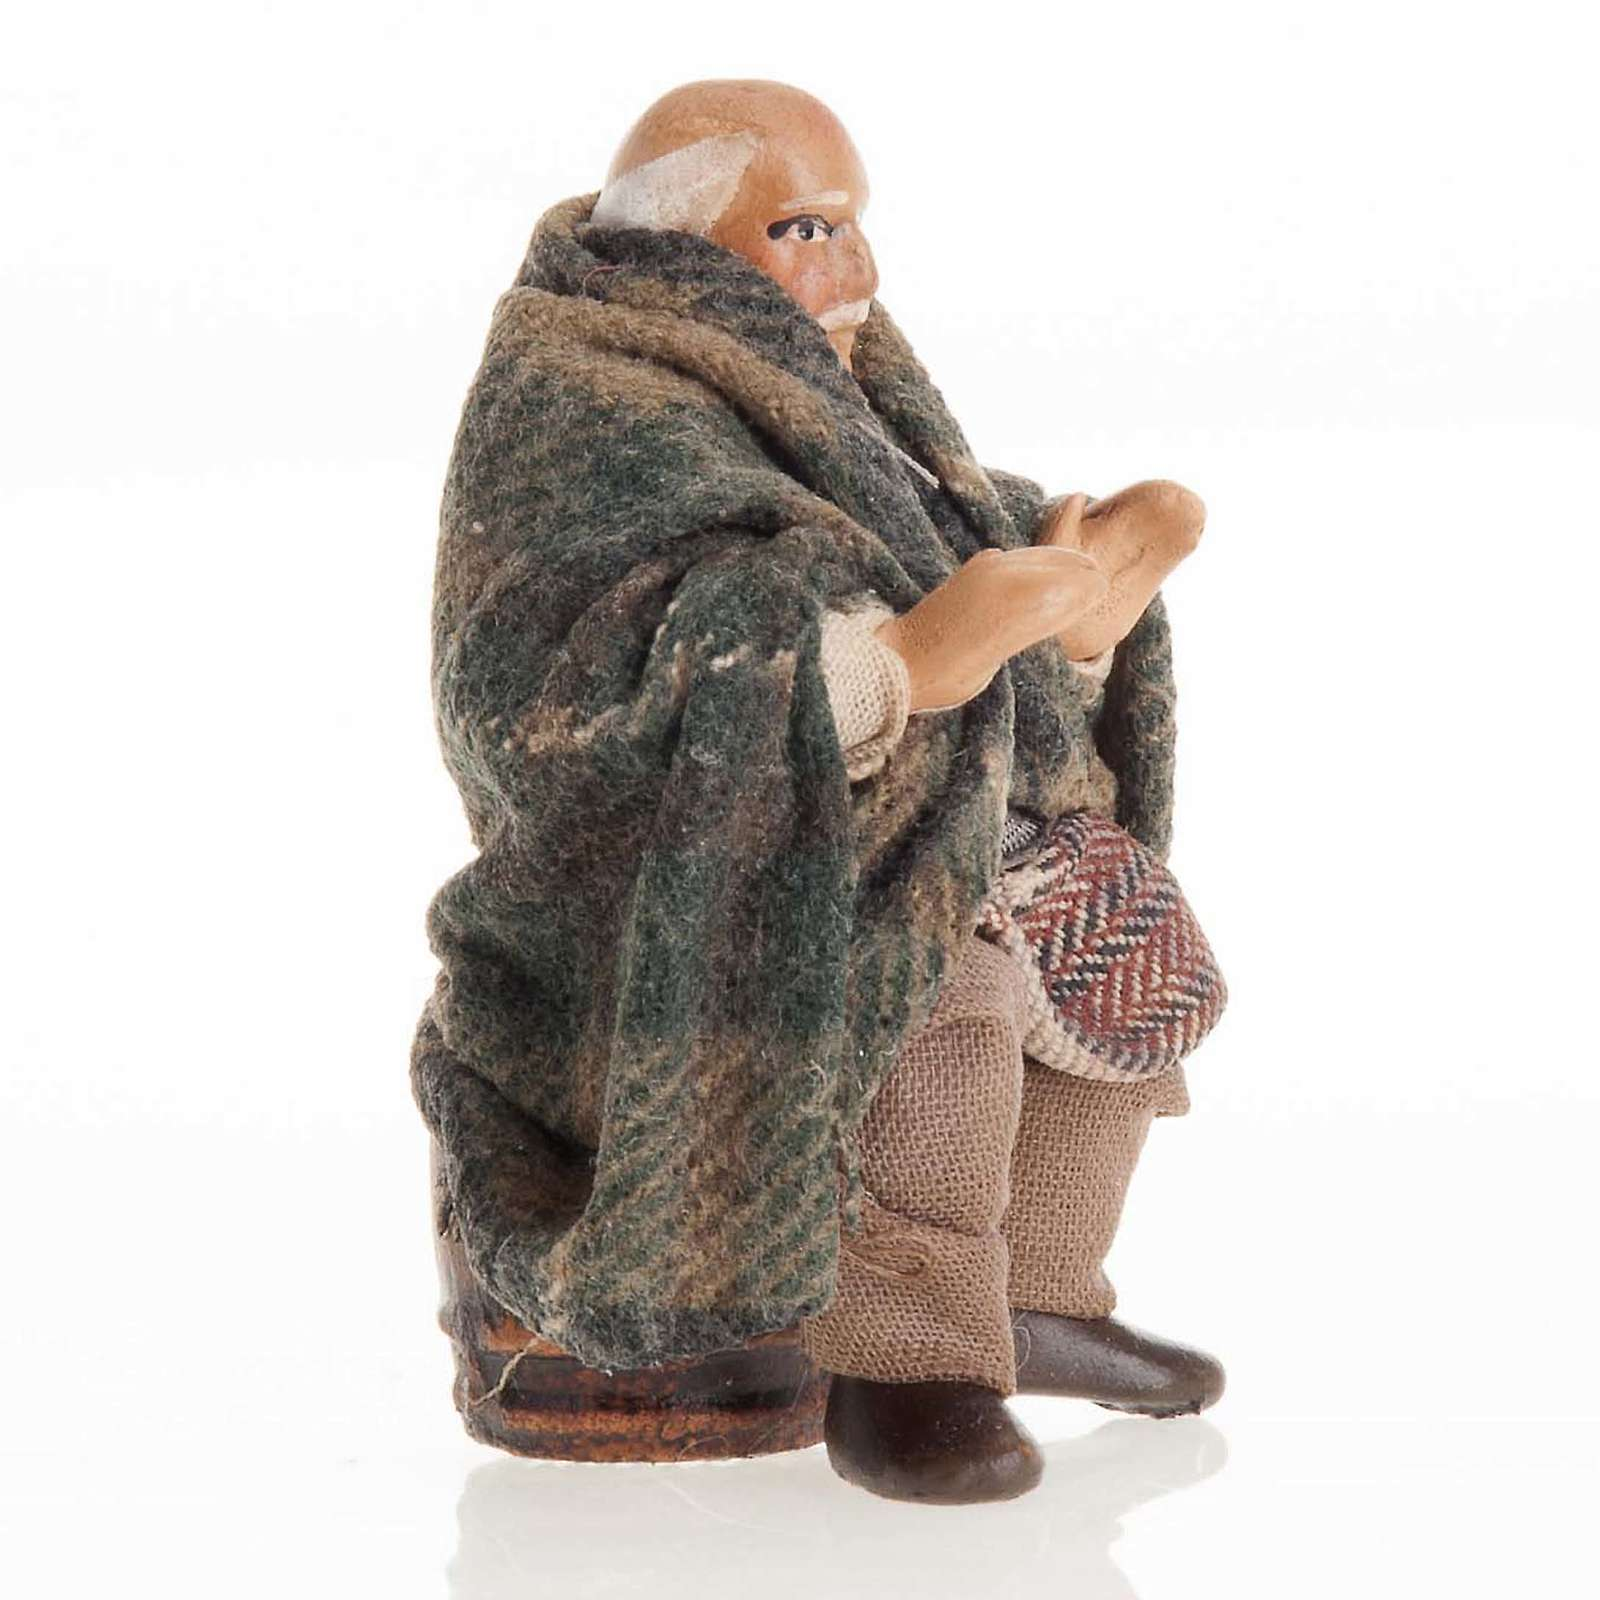 Neapolitan Nativity figurine, Old man 8cm 4